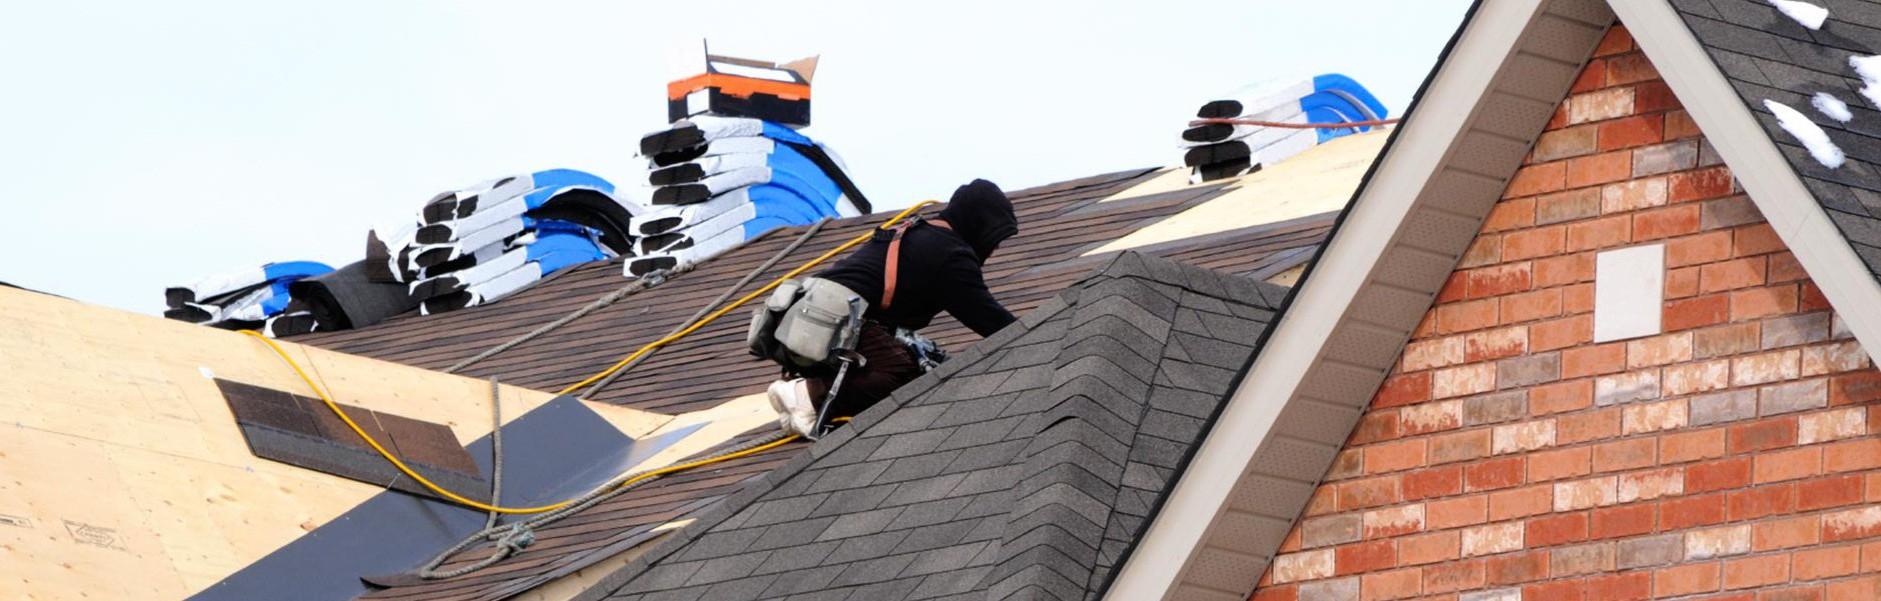 roofing-worker